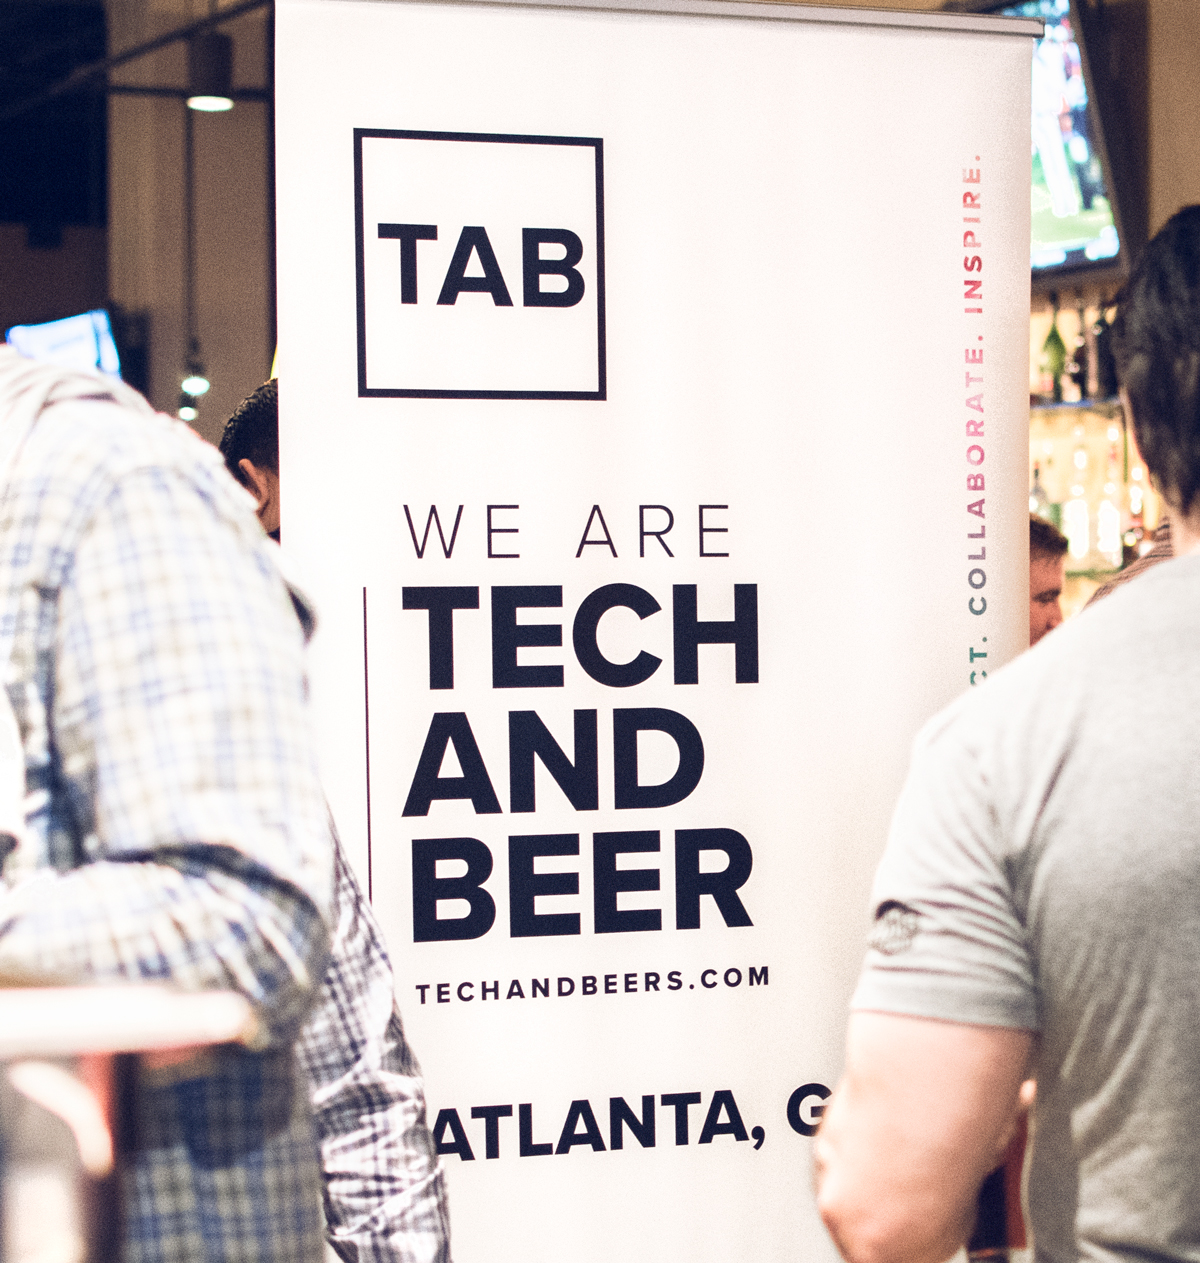 Atlanta Tech And Beers event banner.